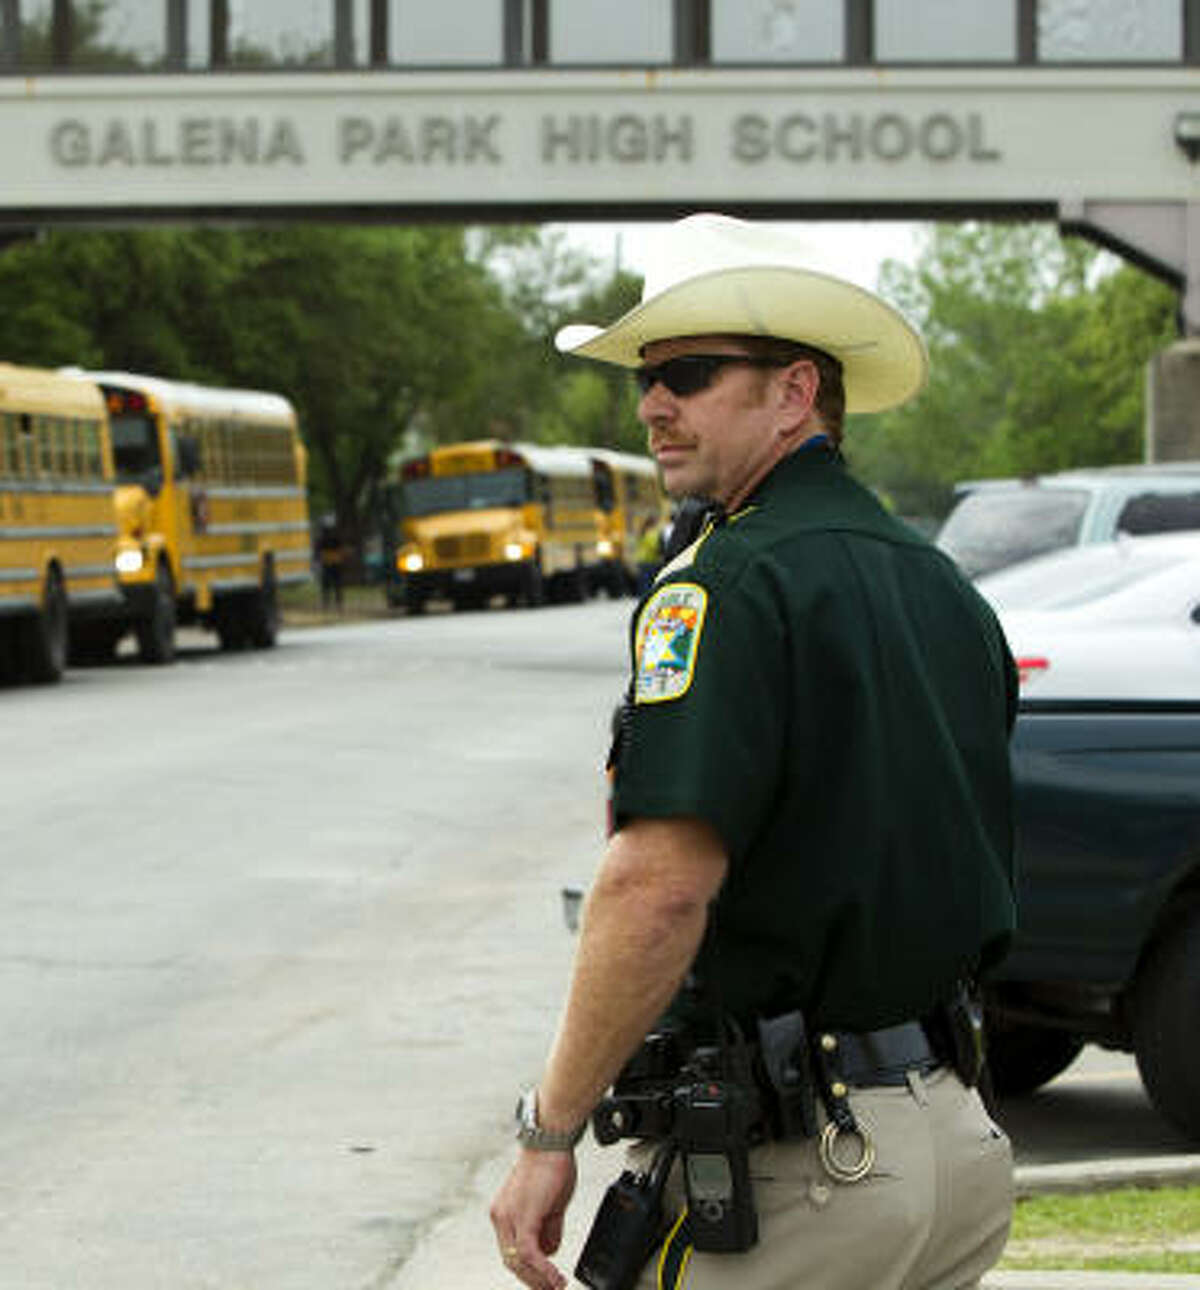 Deputy Constable Mark McGinnis prepares to direct traffic outside Galena Park High School on Friday. He has been stationed at the school for 15 years.